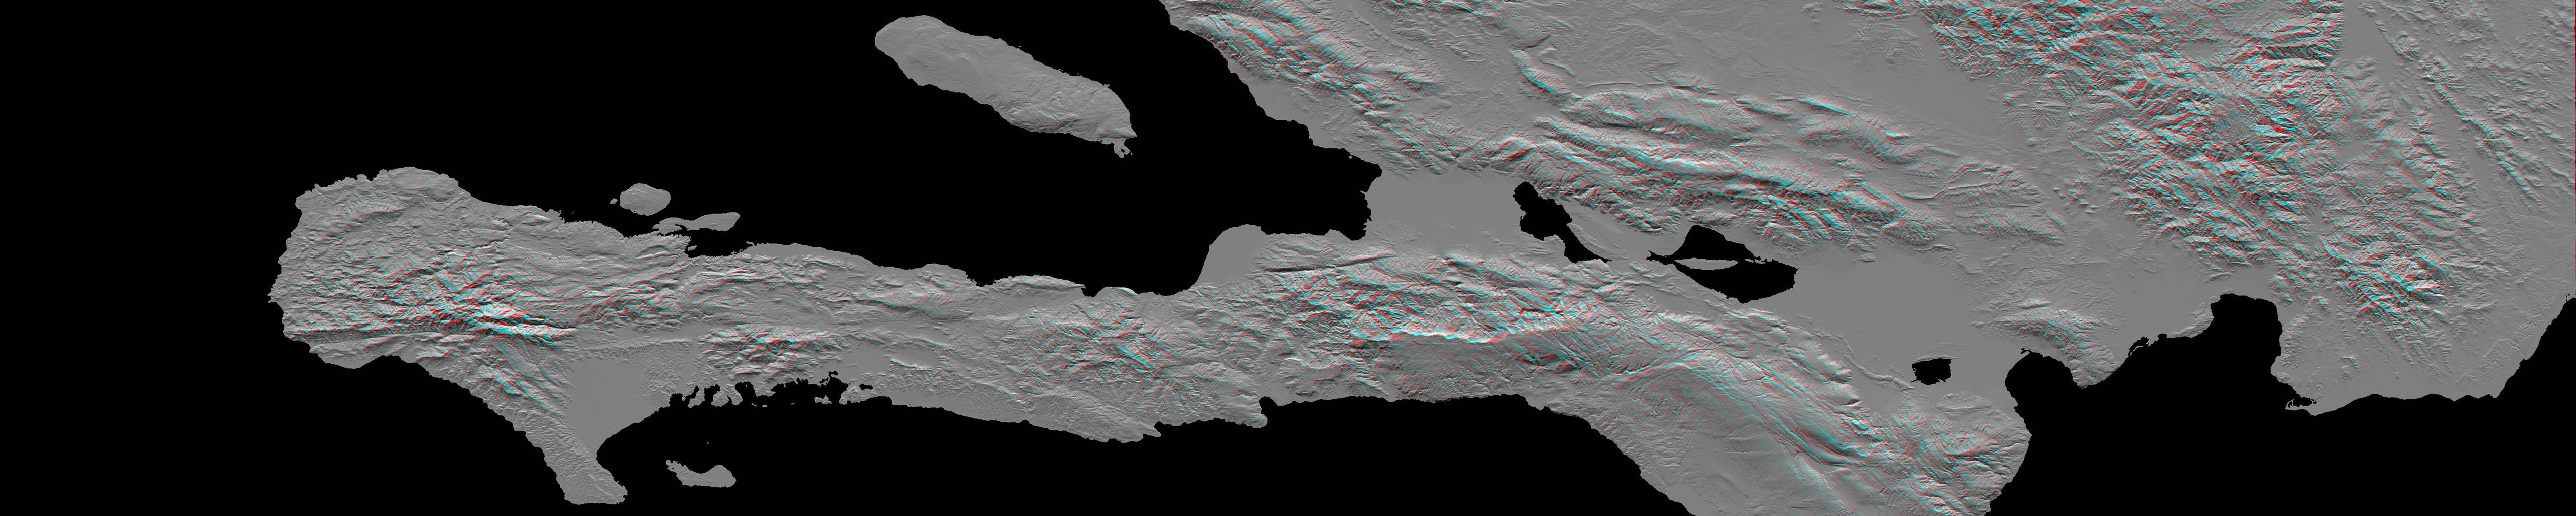 This image, produced from instrument data aboard NASA's Space Shuttle Endeavour, is a stereoscopic view of the topography of Port-au-Prince, Haiti where a magnitude 7.0 earthquake occurred on January 12, 2010. You need 3-D glasses to view this image.